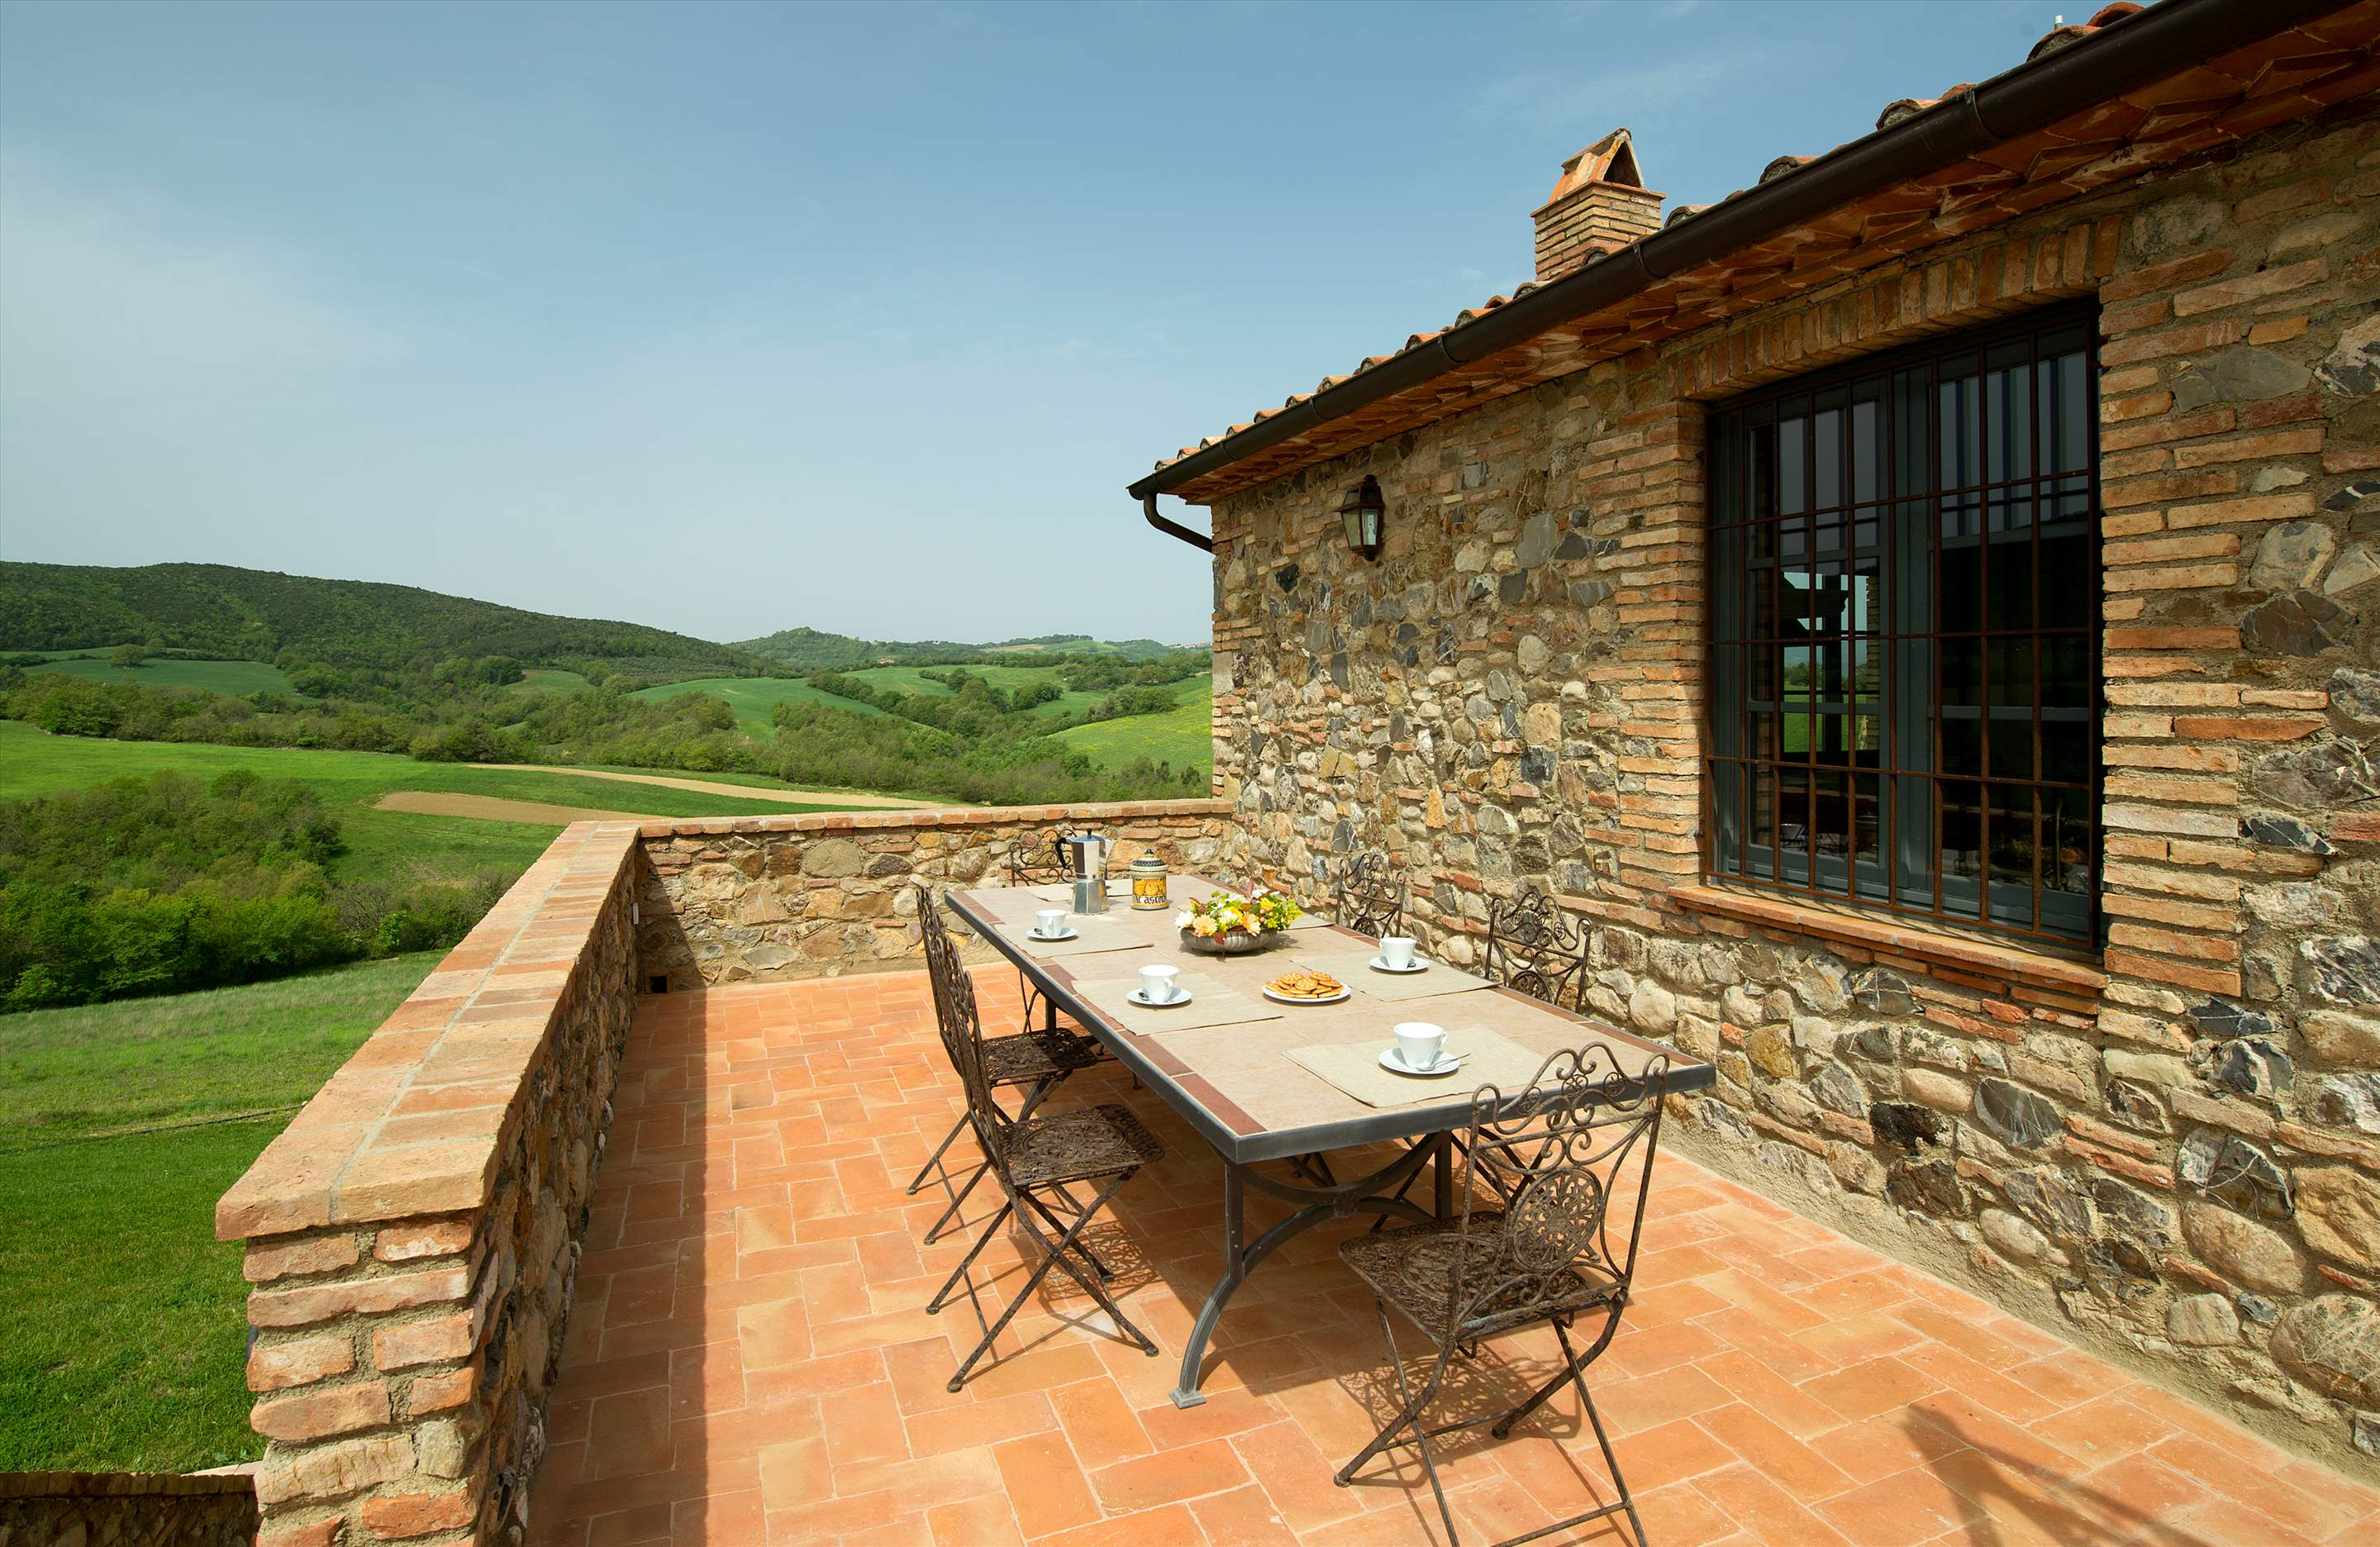 Podere Casacce, Ground Floor, 4 bedroom villa in Tuscany Coast, Tuscany Photo #3